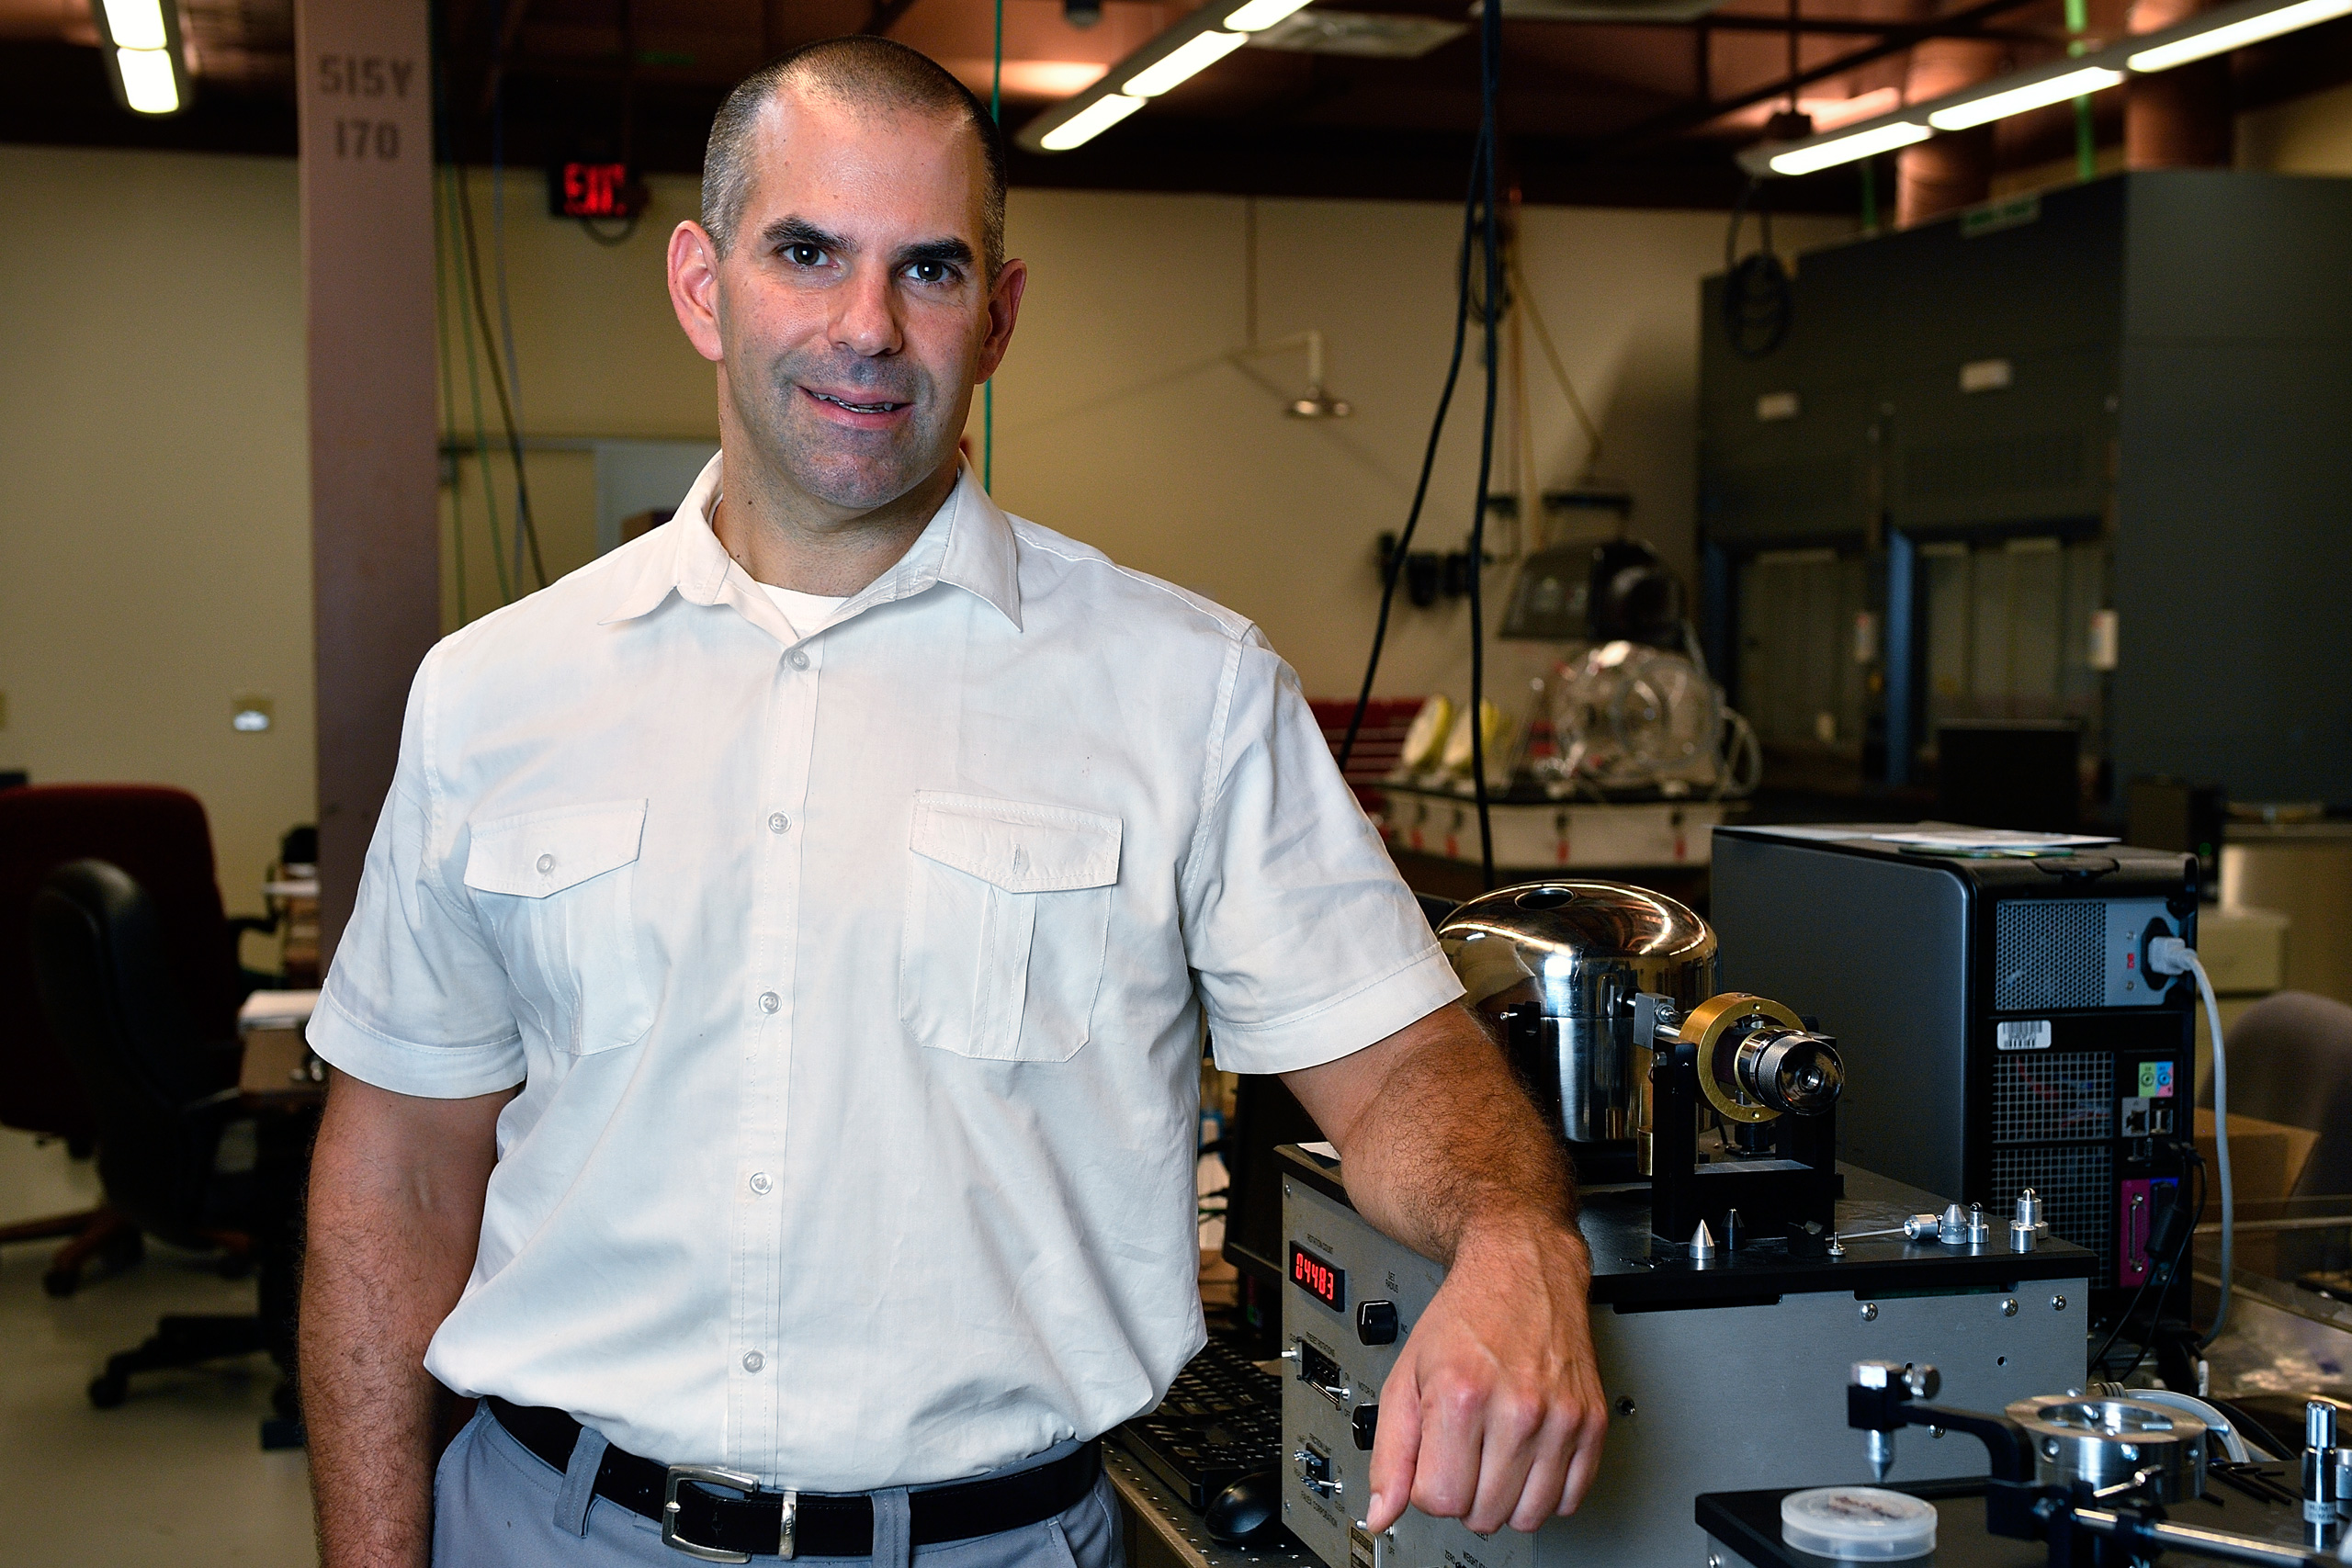 UNT Professor of Materials Science and Engineering Thomas Scharf.